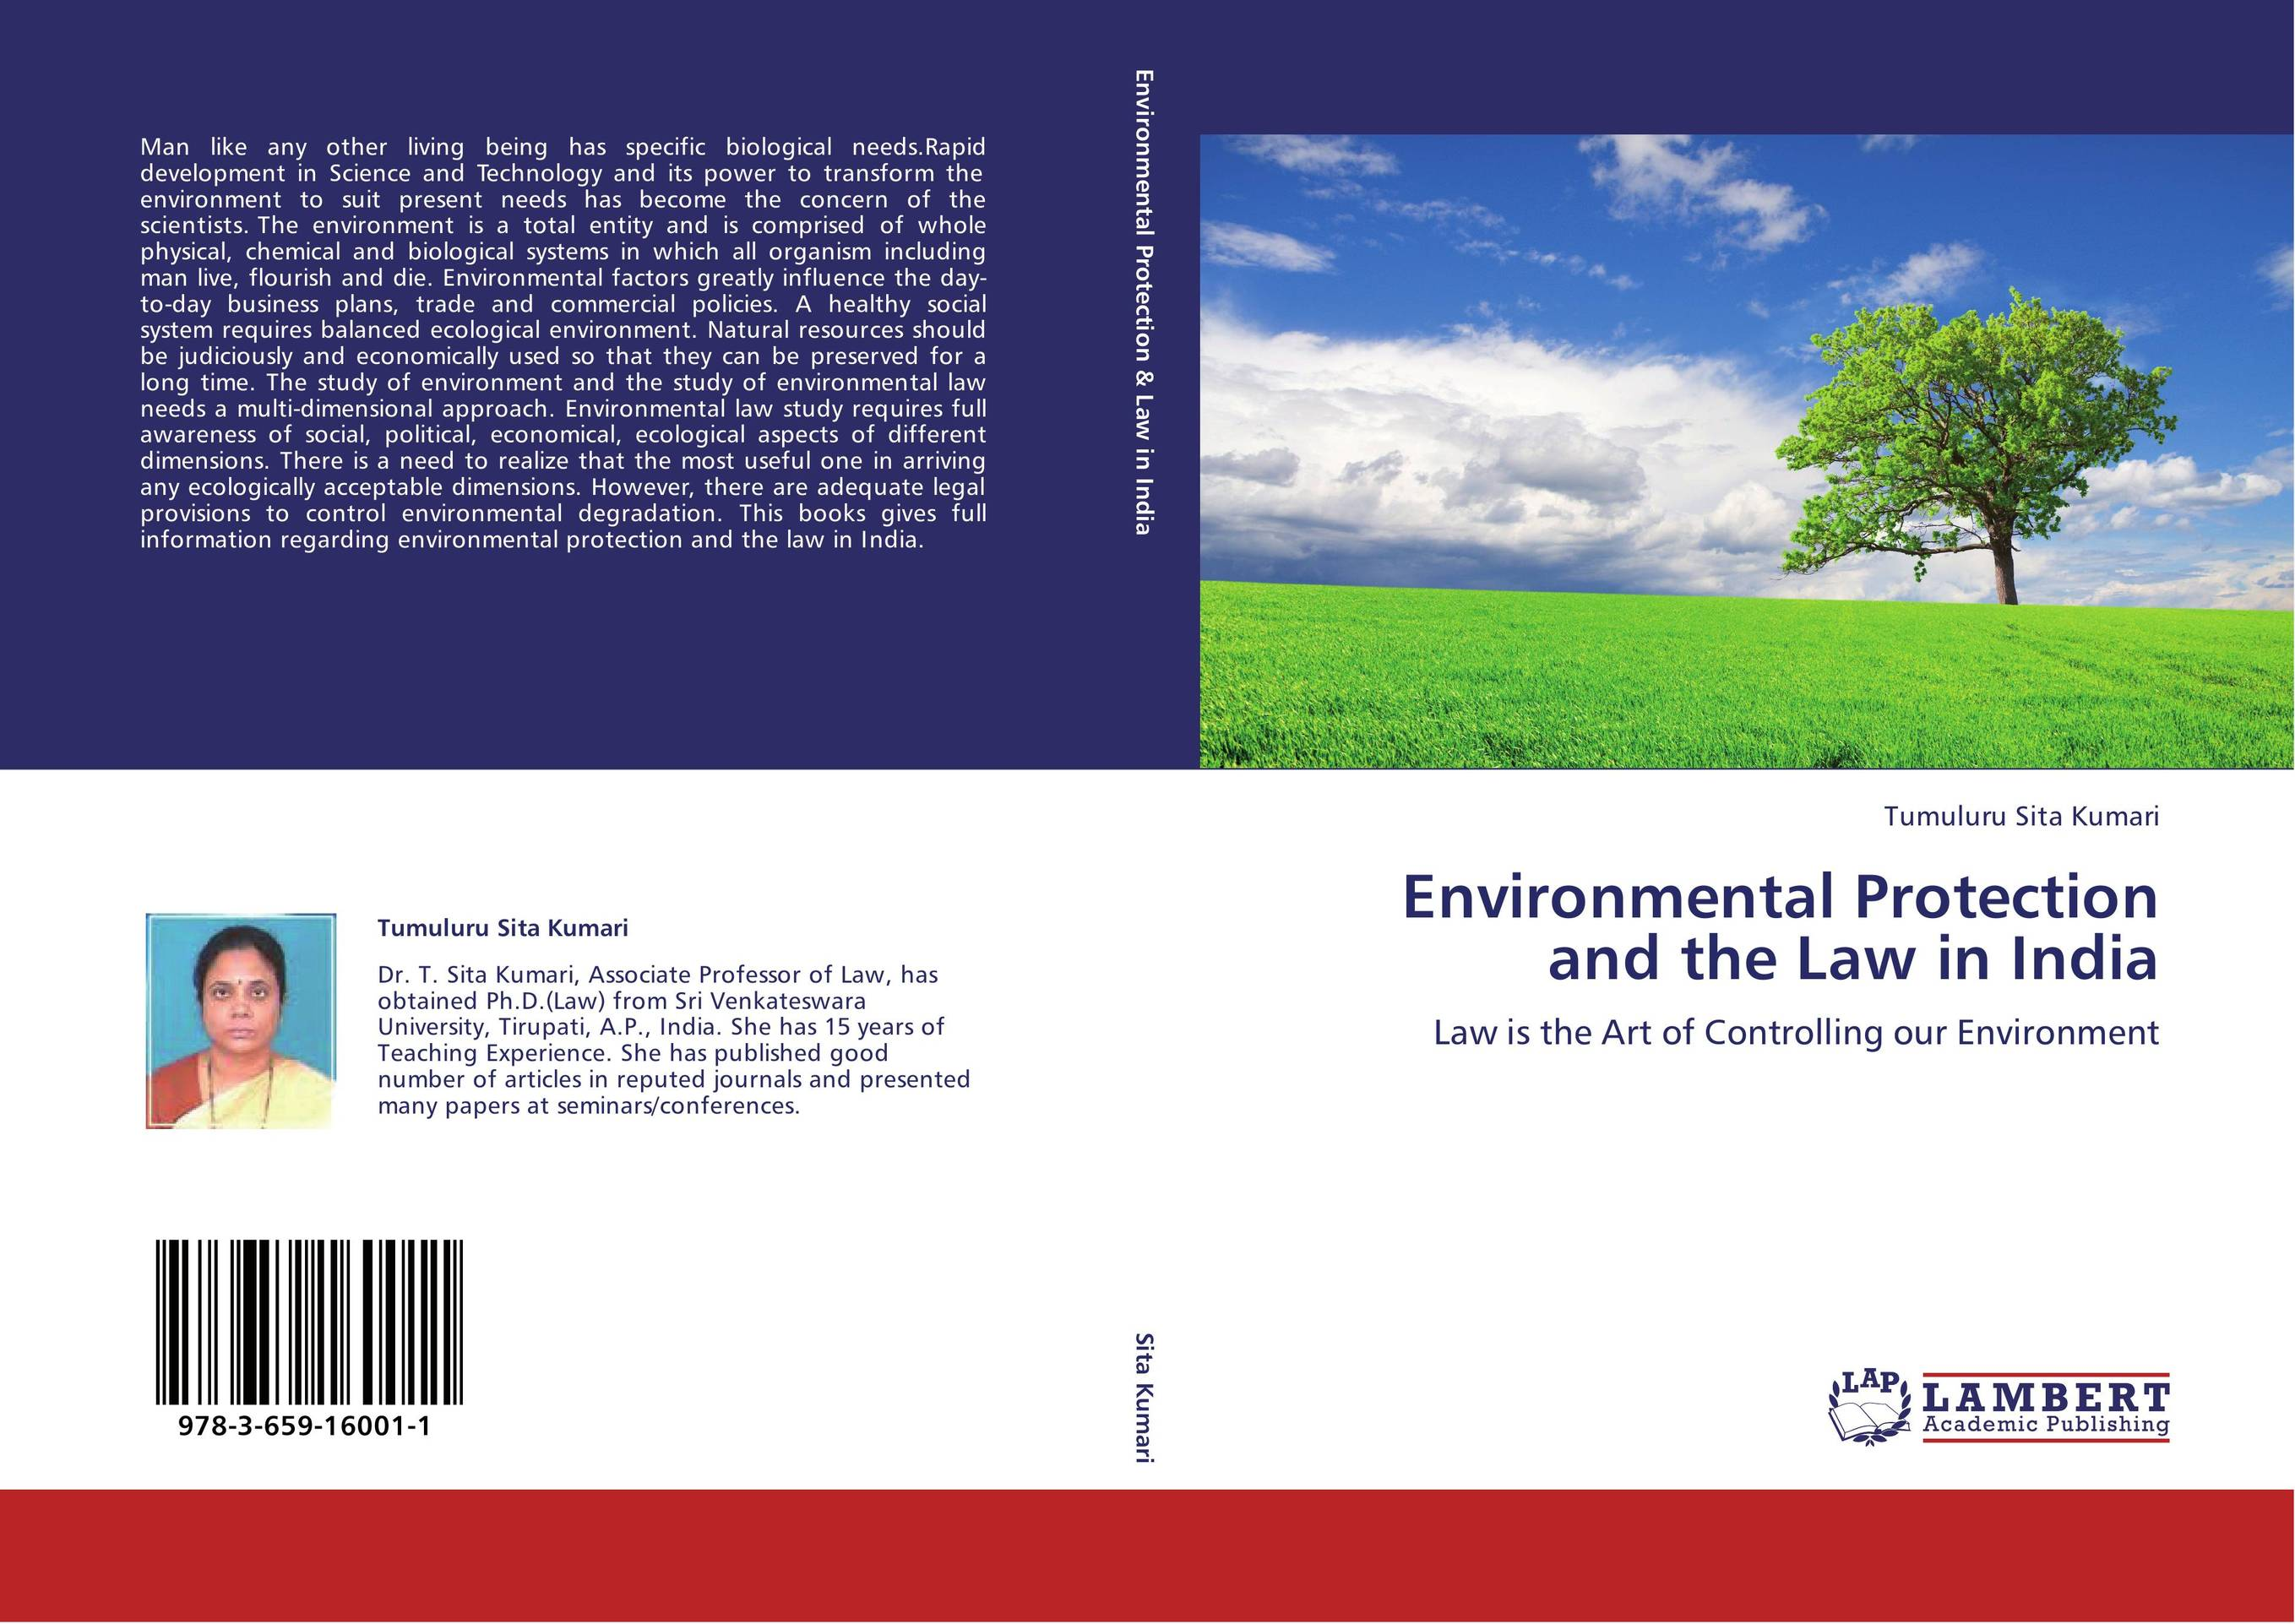 ecological balance of environment essay United nations and the environment essay the role of unep in the world's monitoring of water, air and land pollution pacific northwest forest industry essay the contemporary vital problems of exhausting the resources of the pacific northwest enviroment.